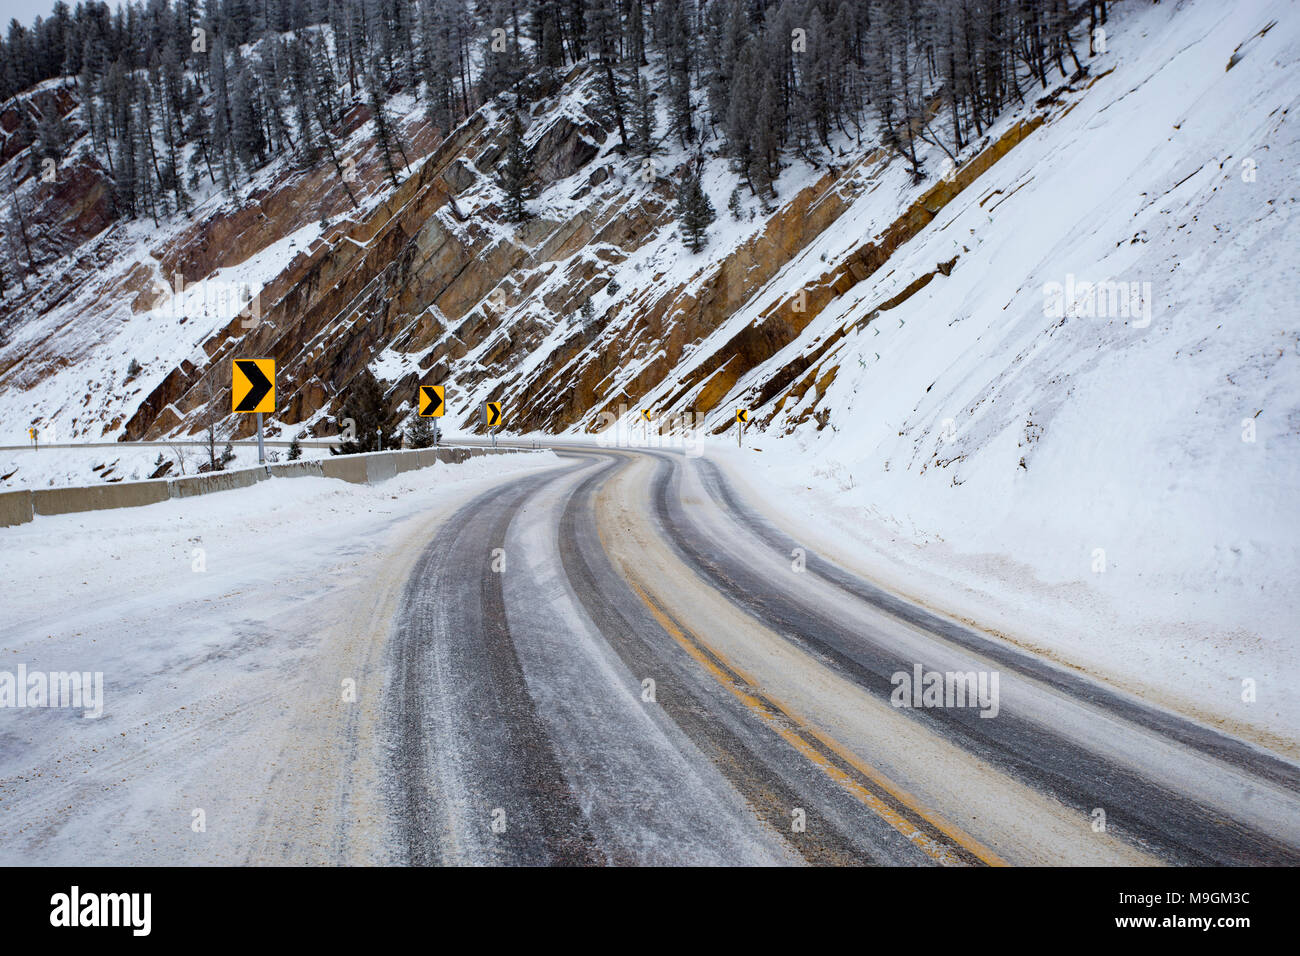 Road Conditions Stock Photos & Road Conditions Stock Images - Alamy